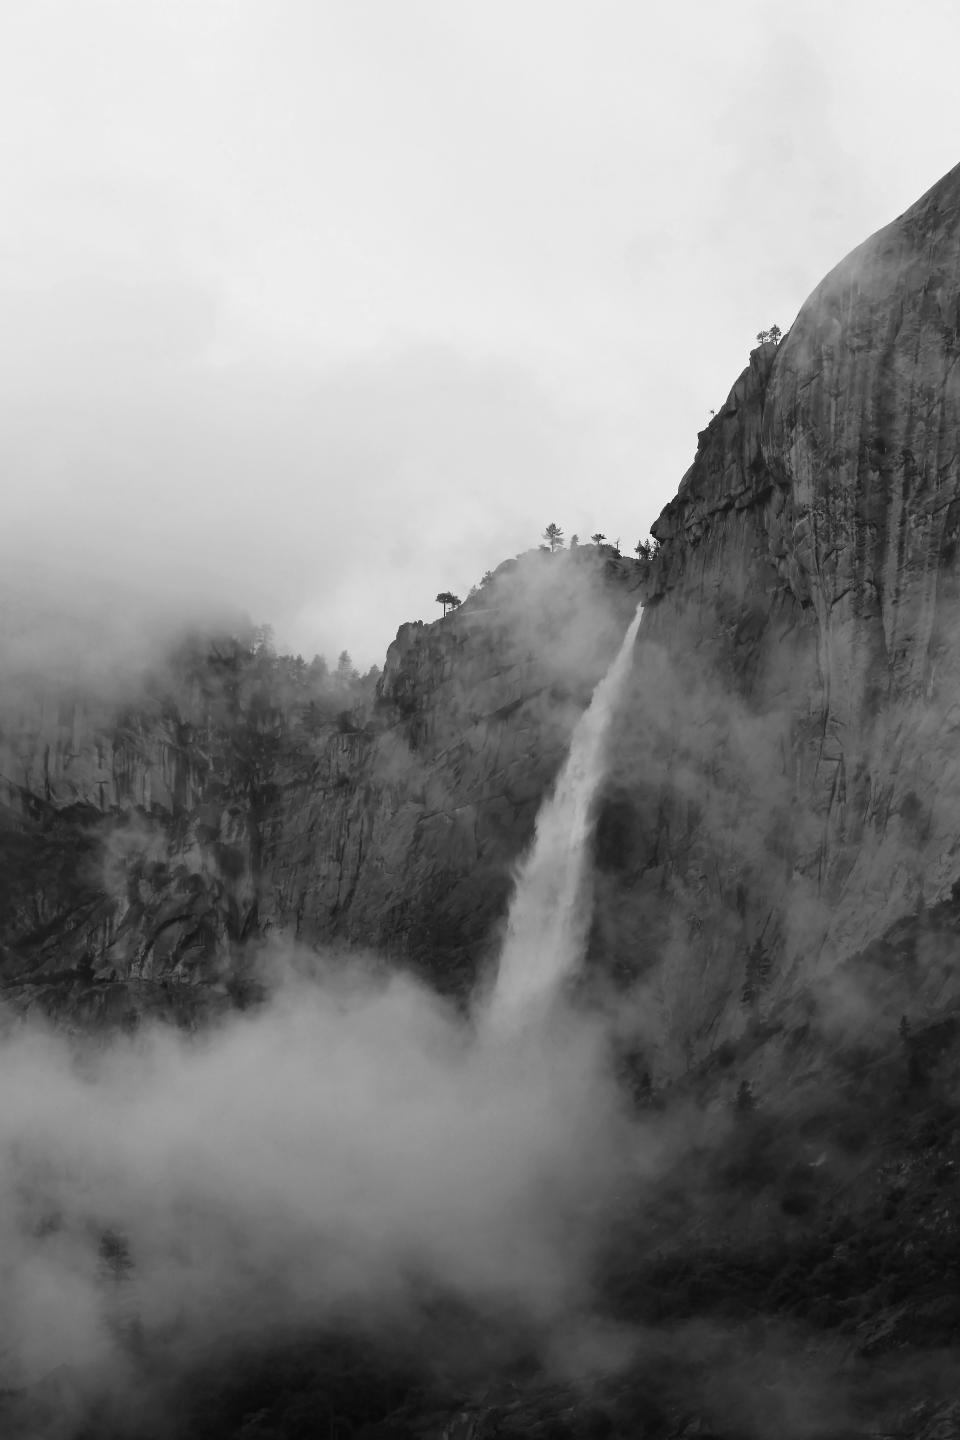 waterfalls, nature, landscape, mountain, trees, plants, hill, cliff, sky, black and white